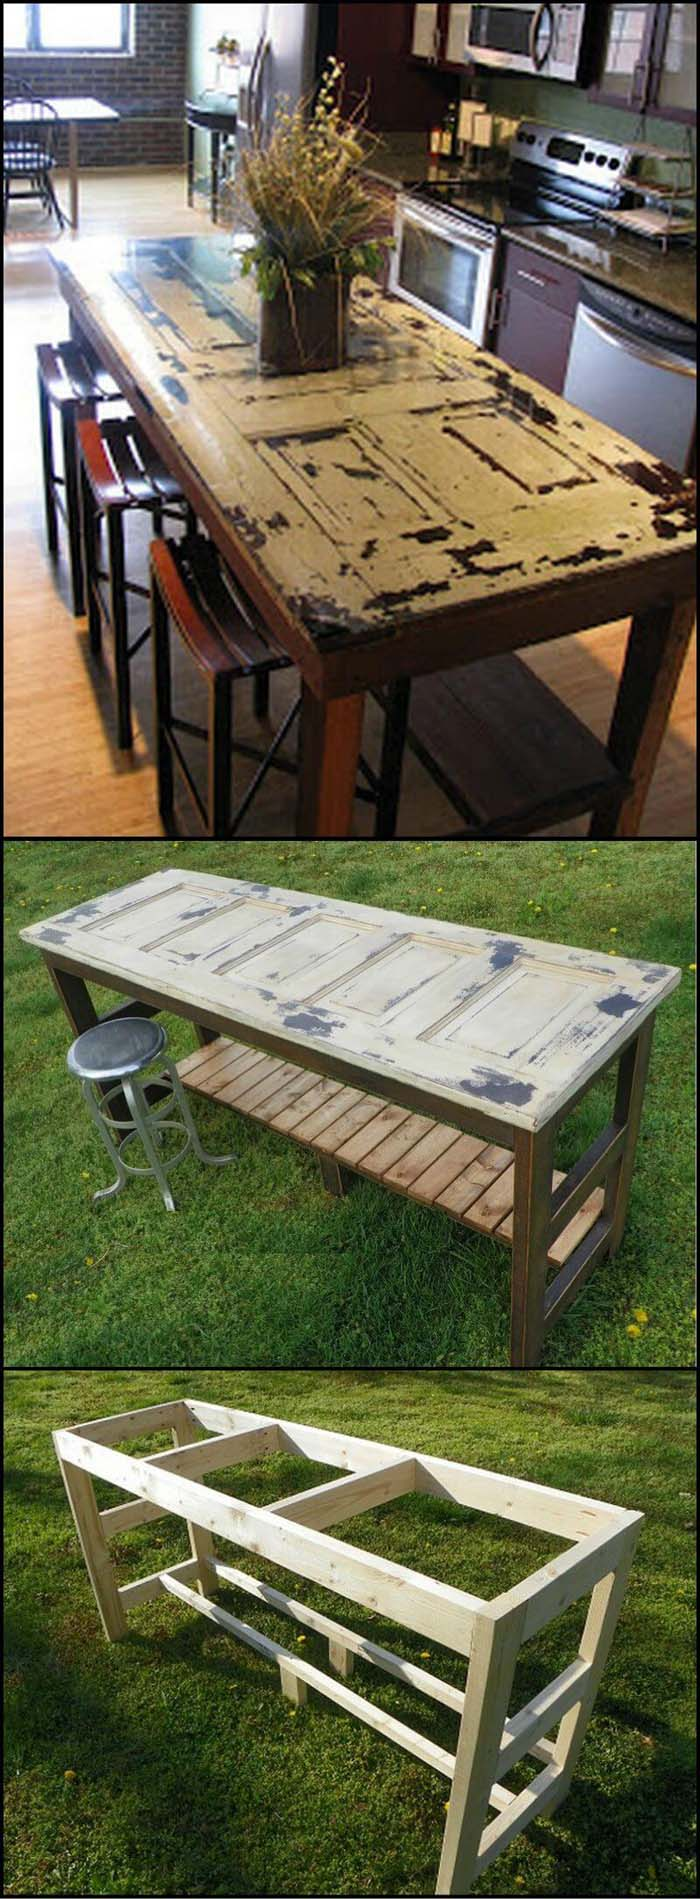 Upcycled Door Doubles as Eating and Workspace #diy #ktichenisland #decorhomeideas